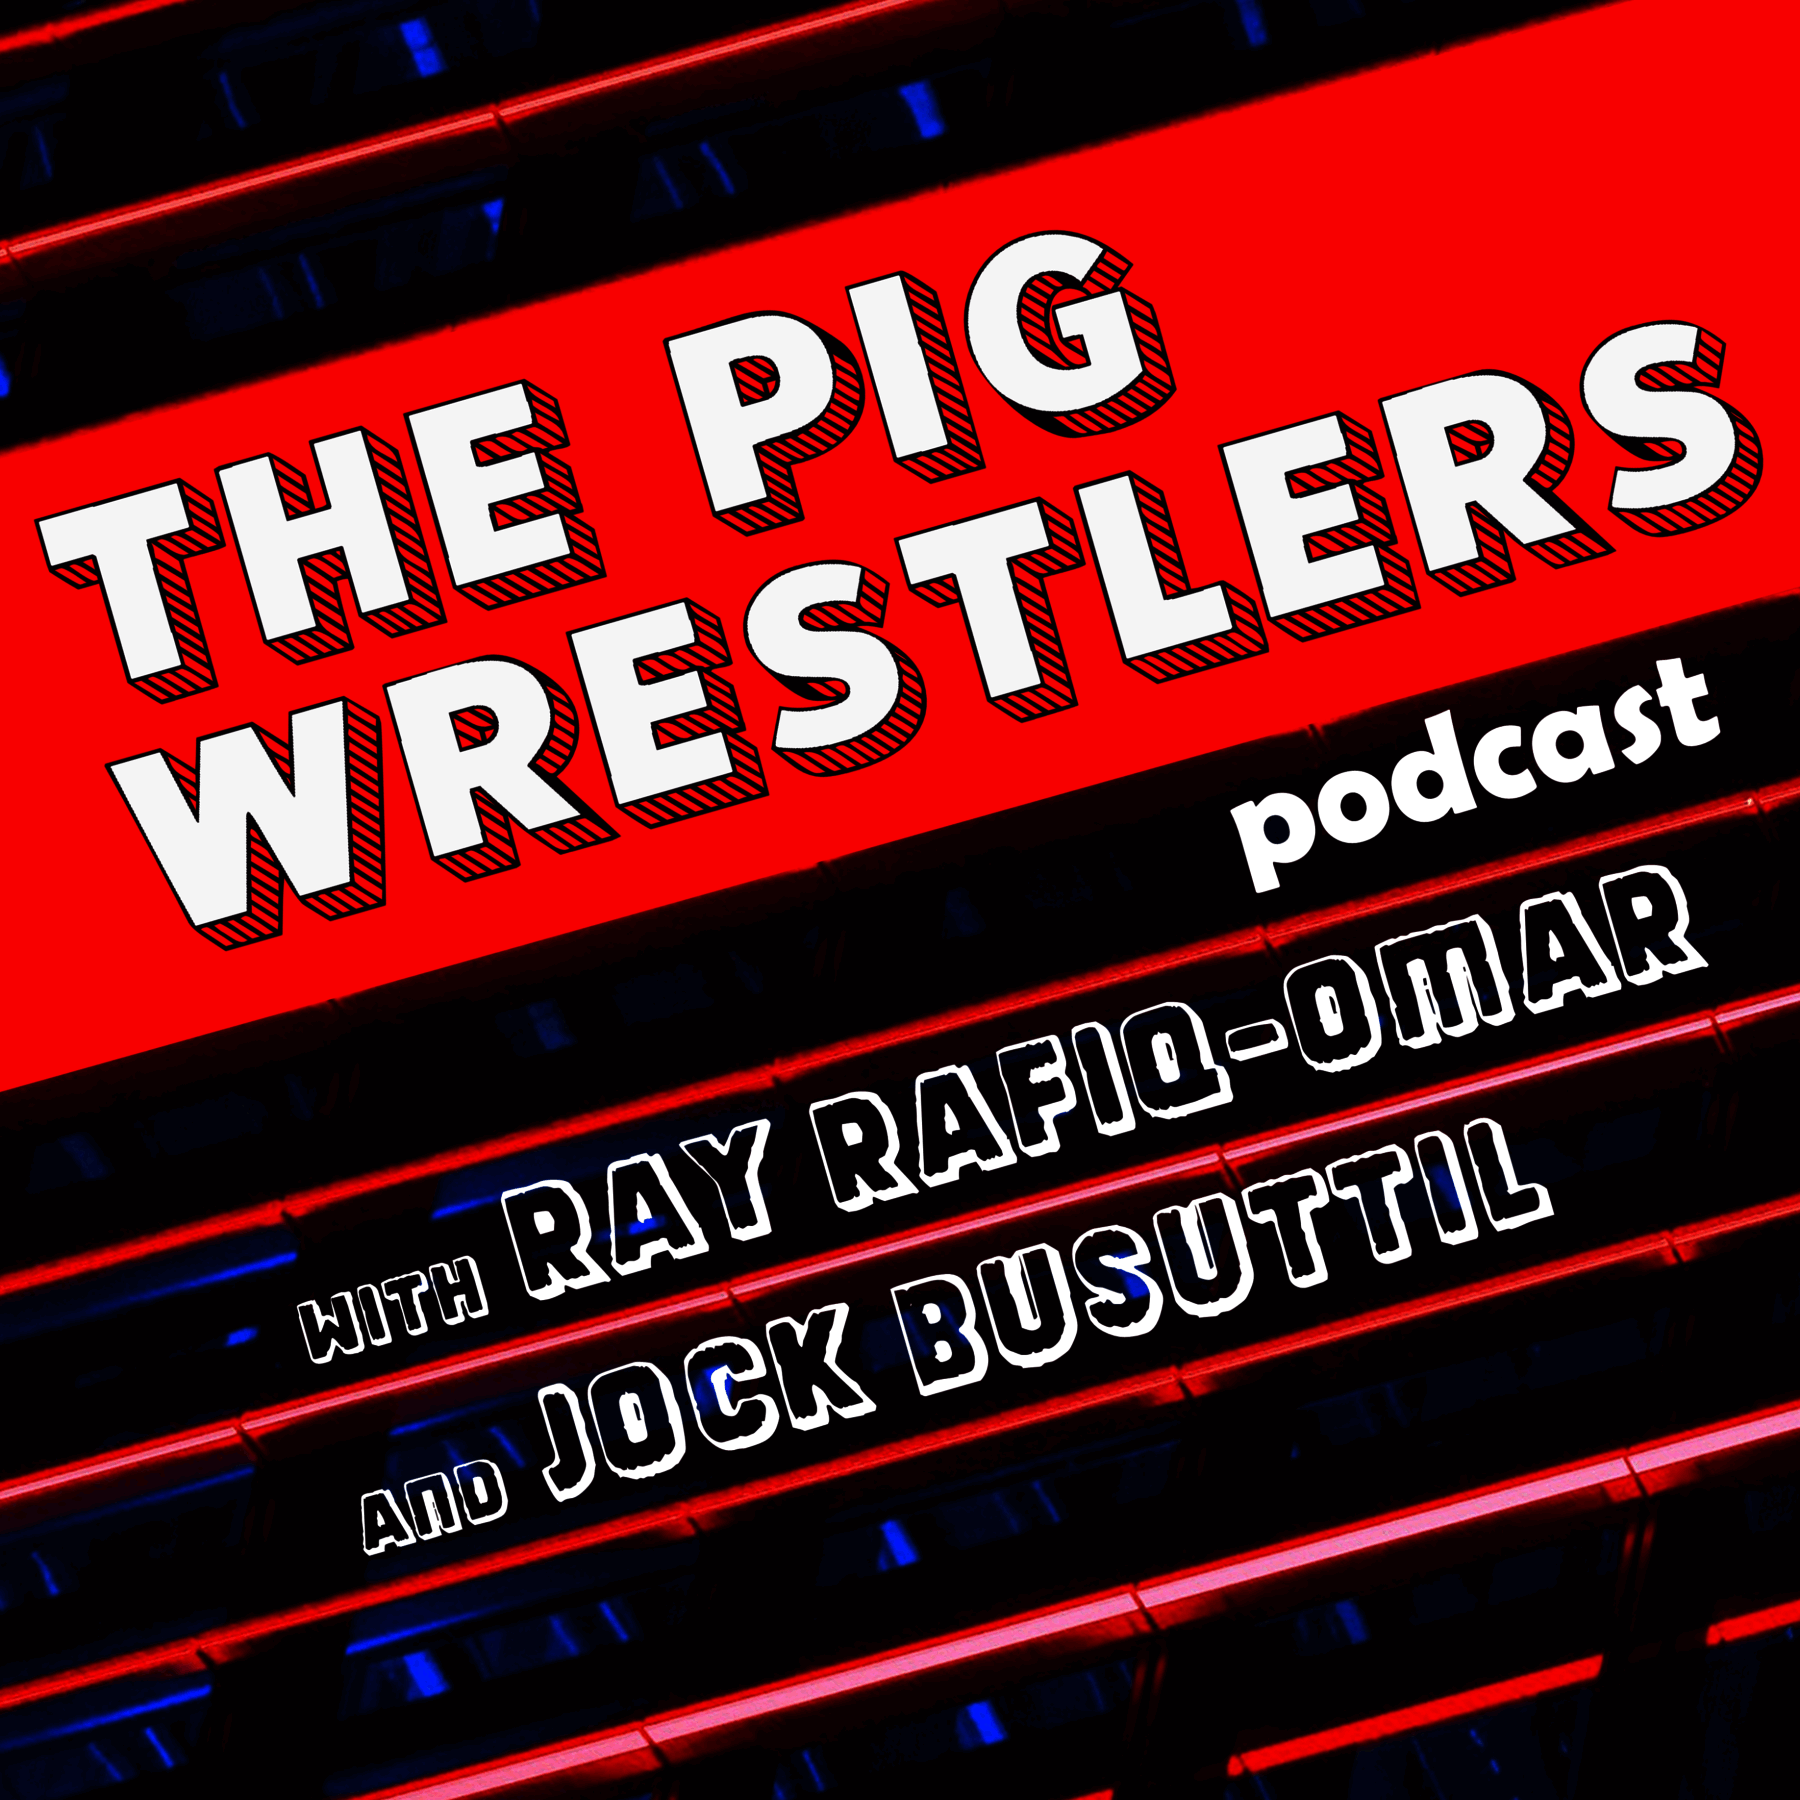 The Pig Wrestlers